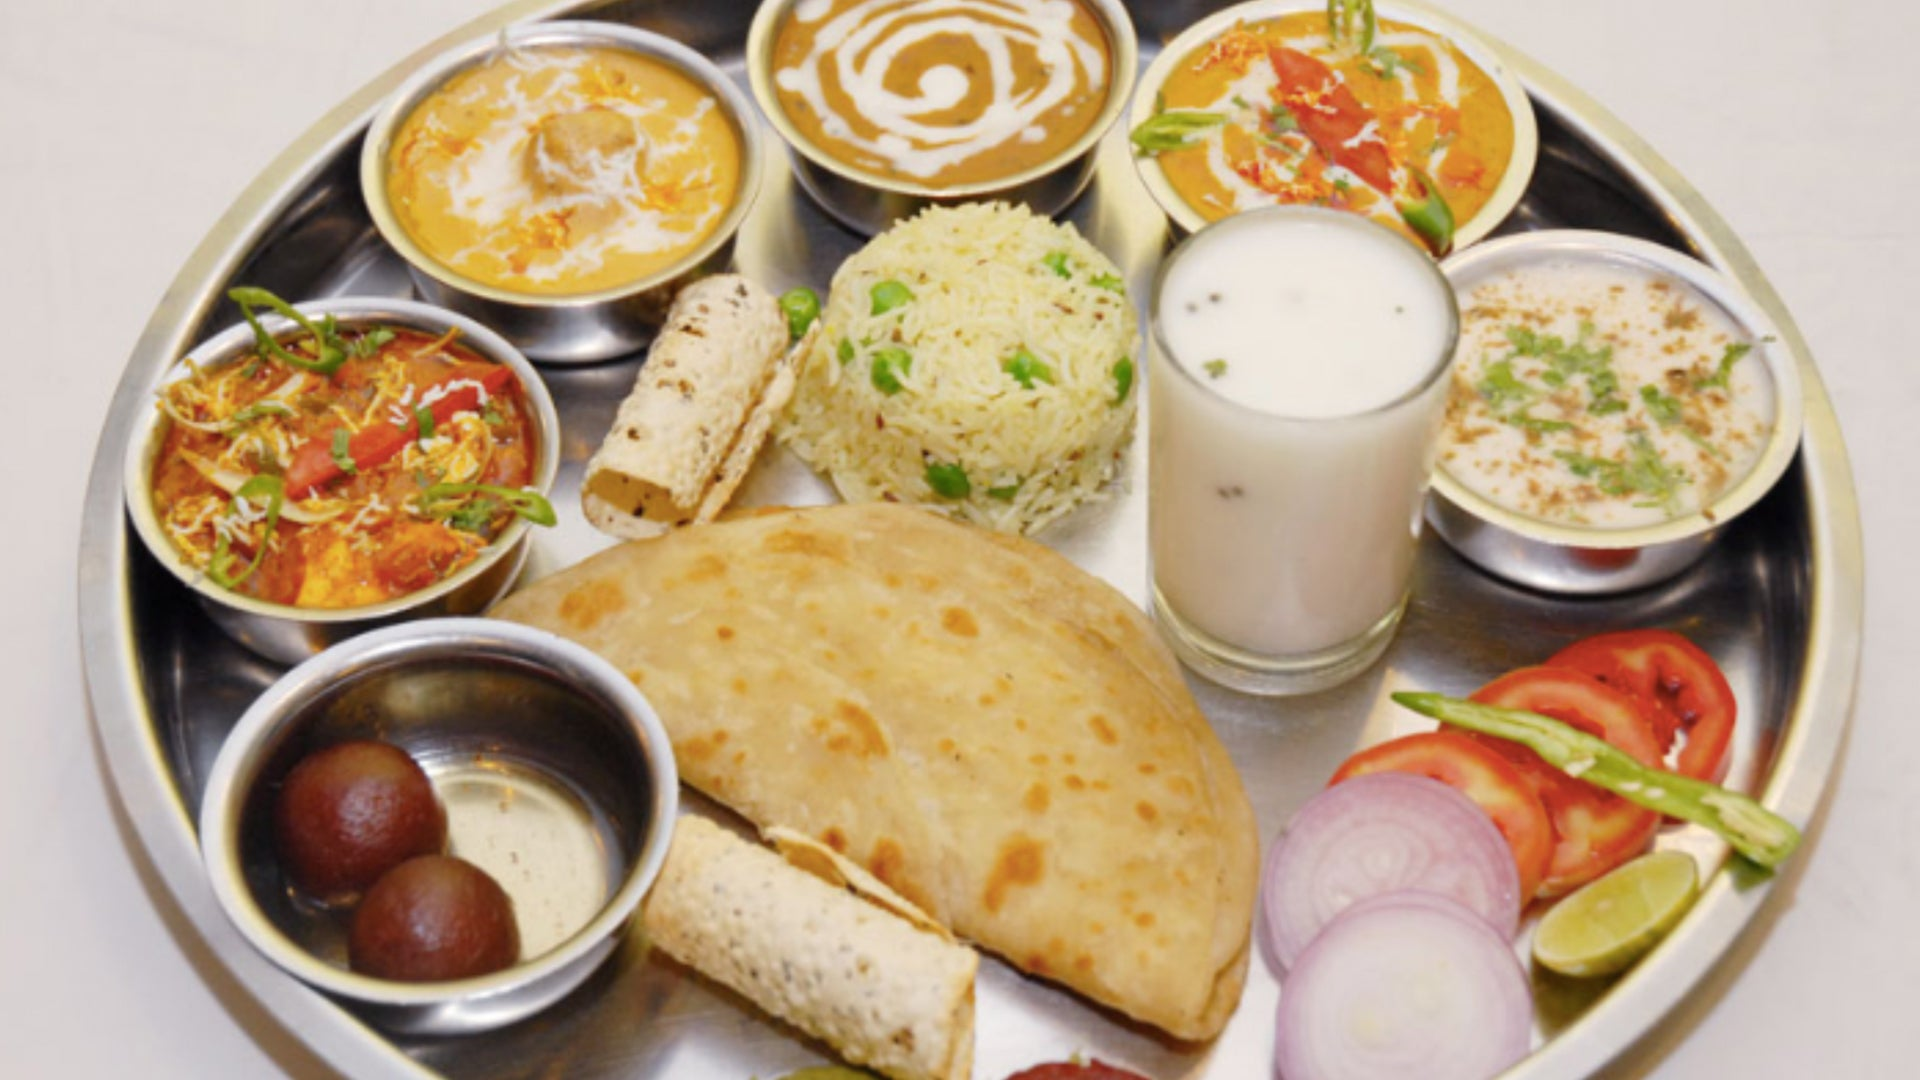 Vegetarian Food In Asia: Where To Find It In the City